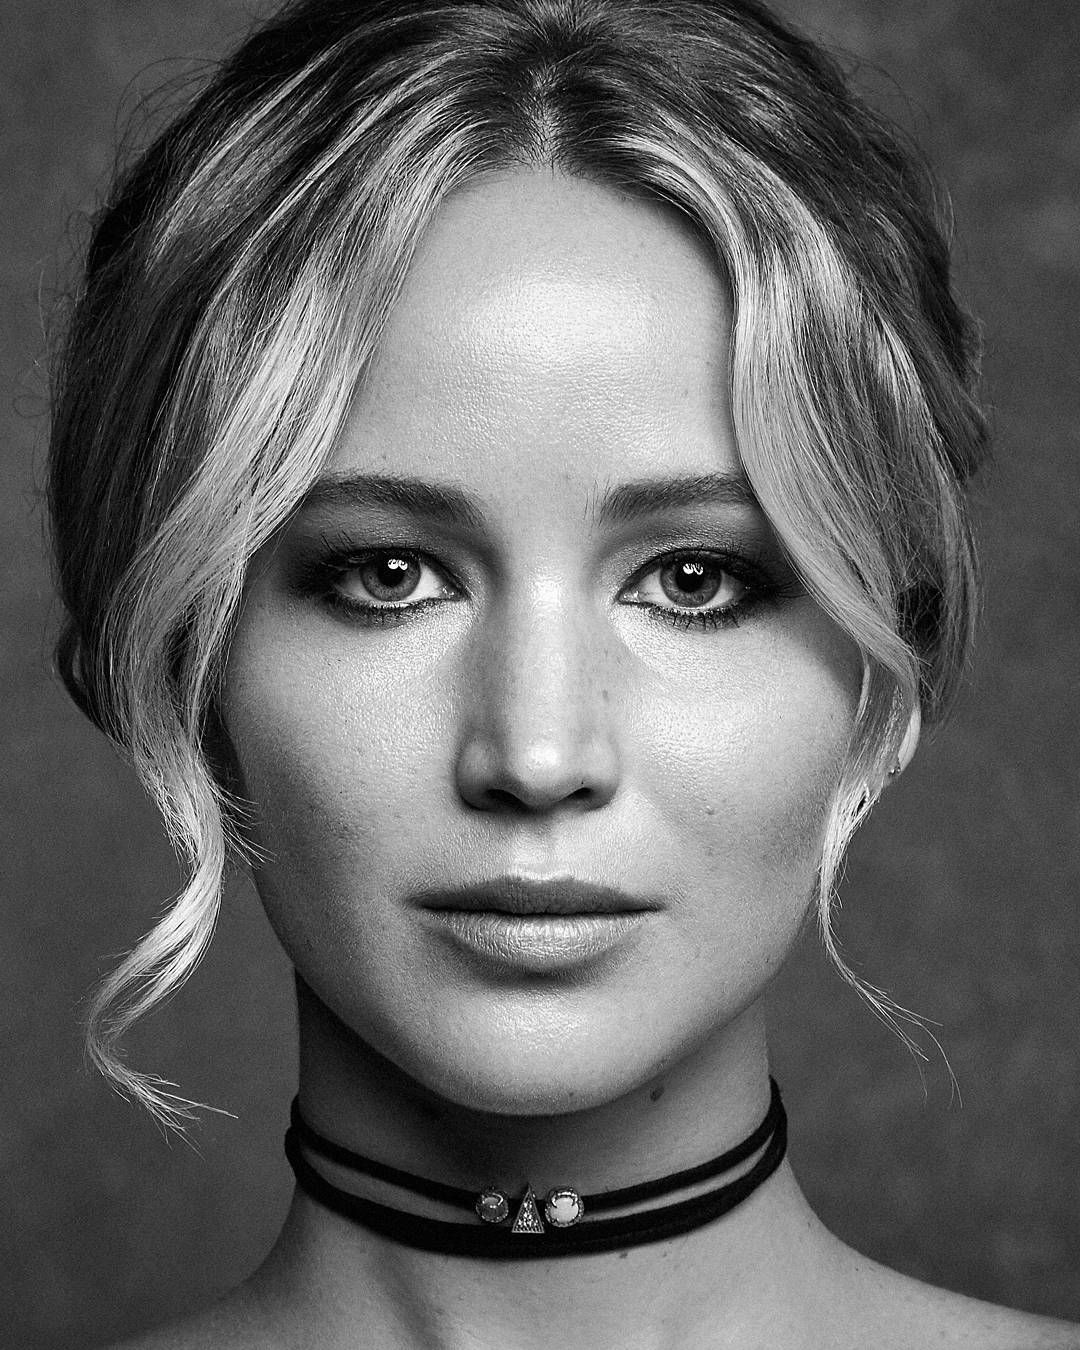 Female Celebrity Black And White Portrait Photo